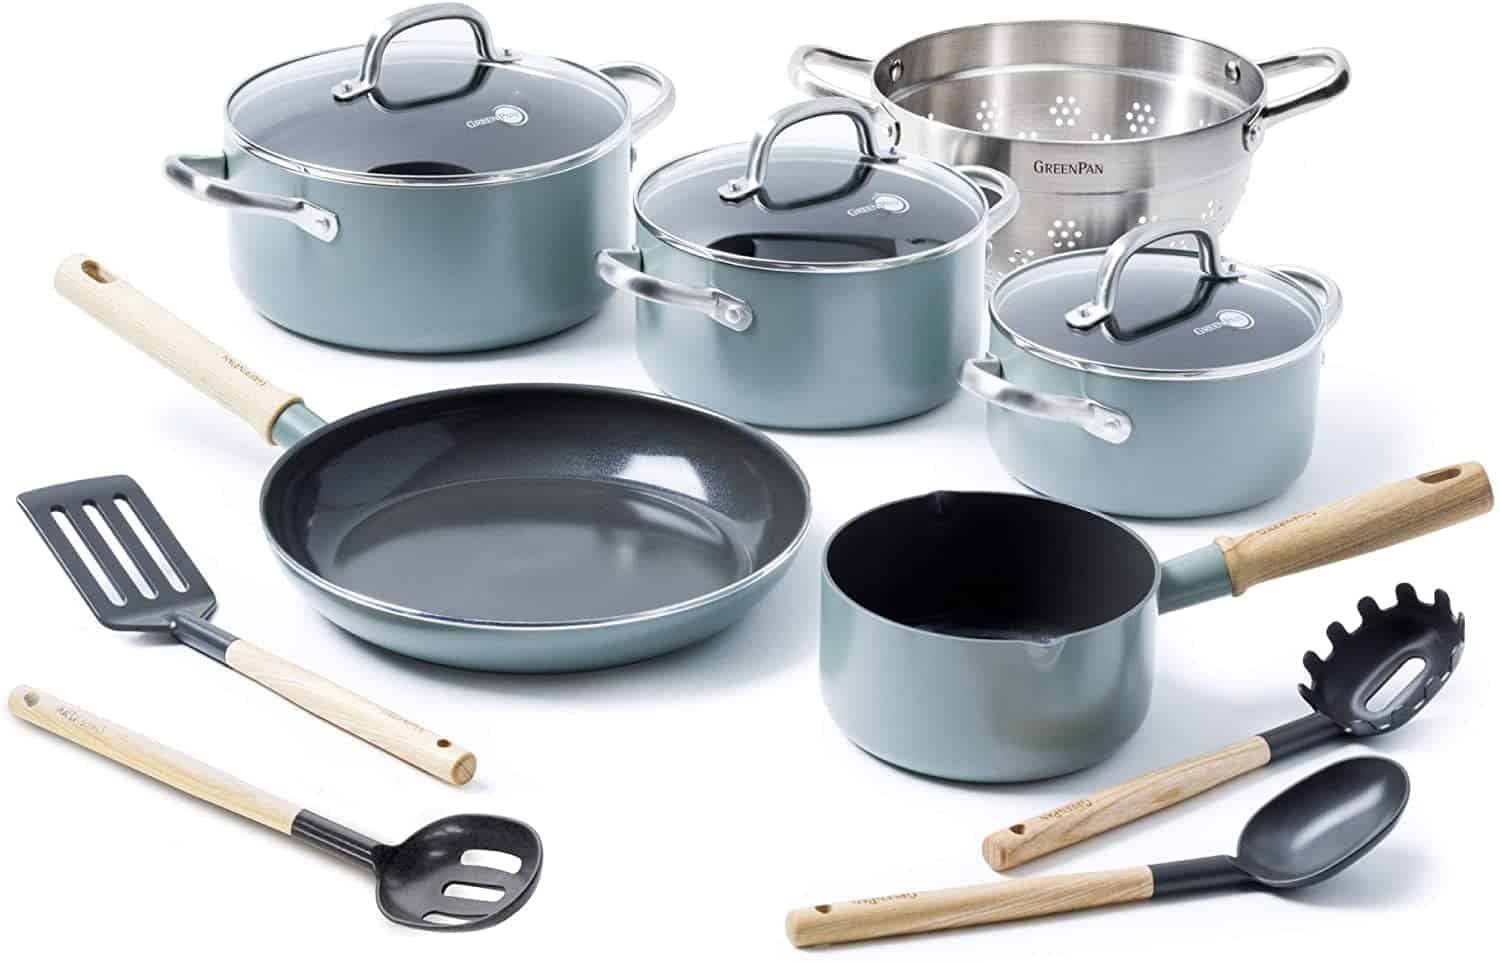 Best cookware set for ceramic stove top: Greenpan Mayflower